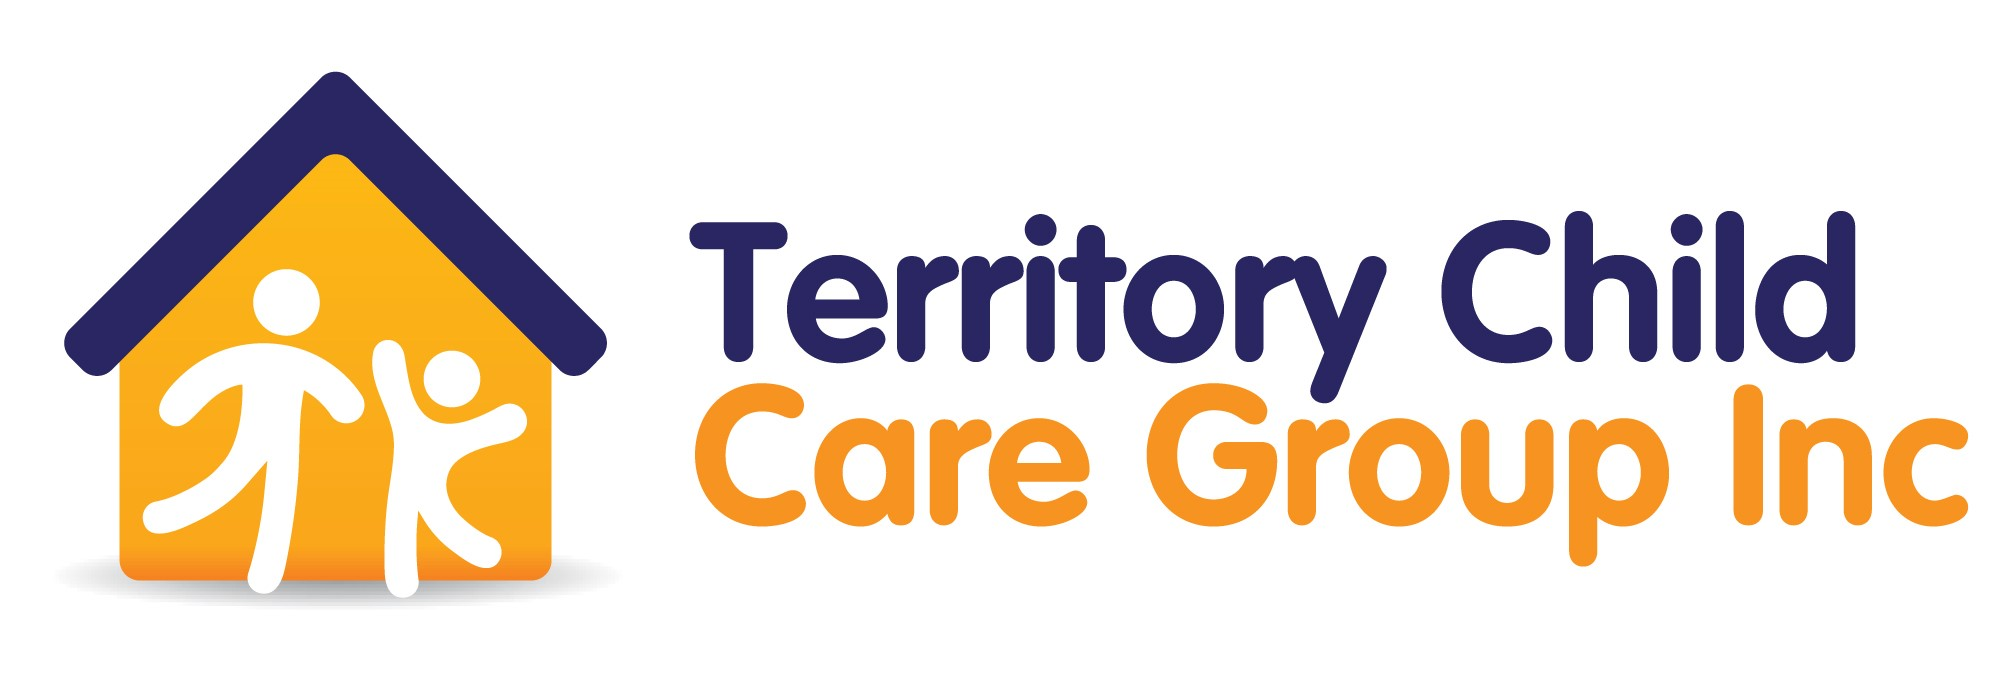 Territory Child Care Group Logo